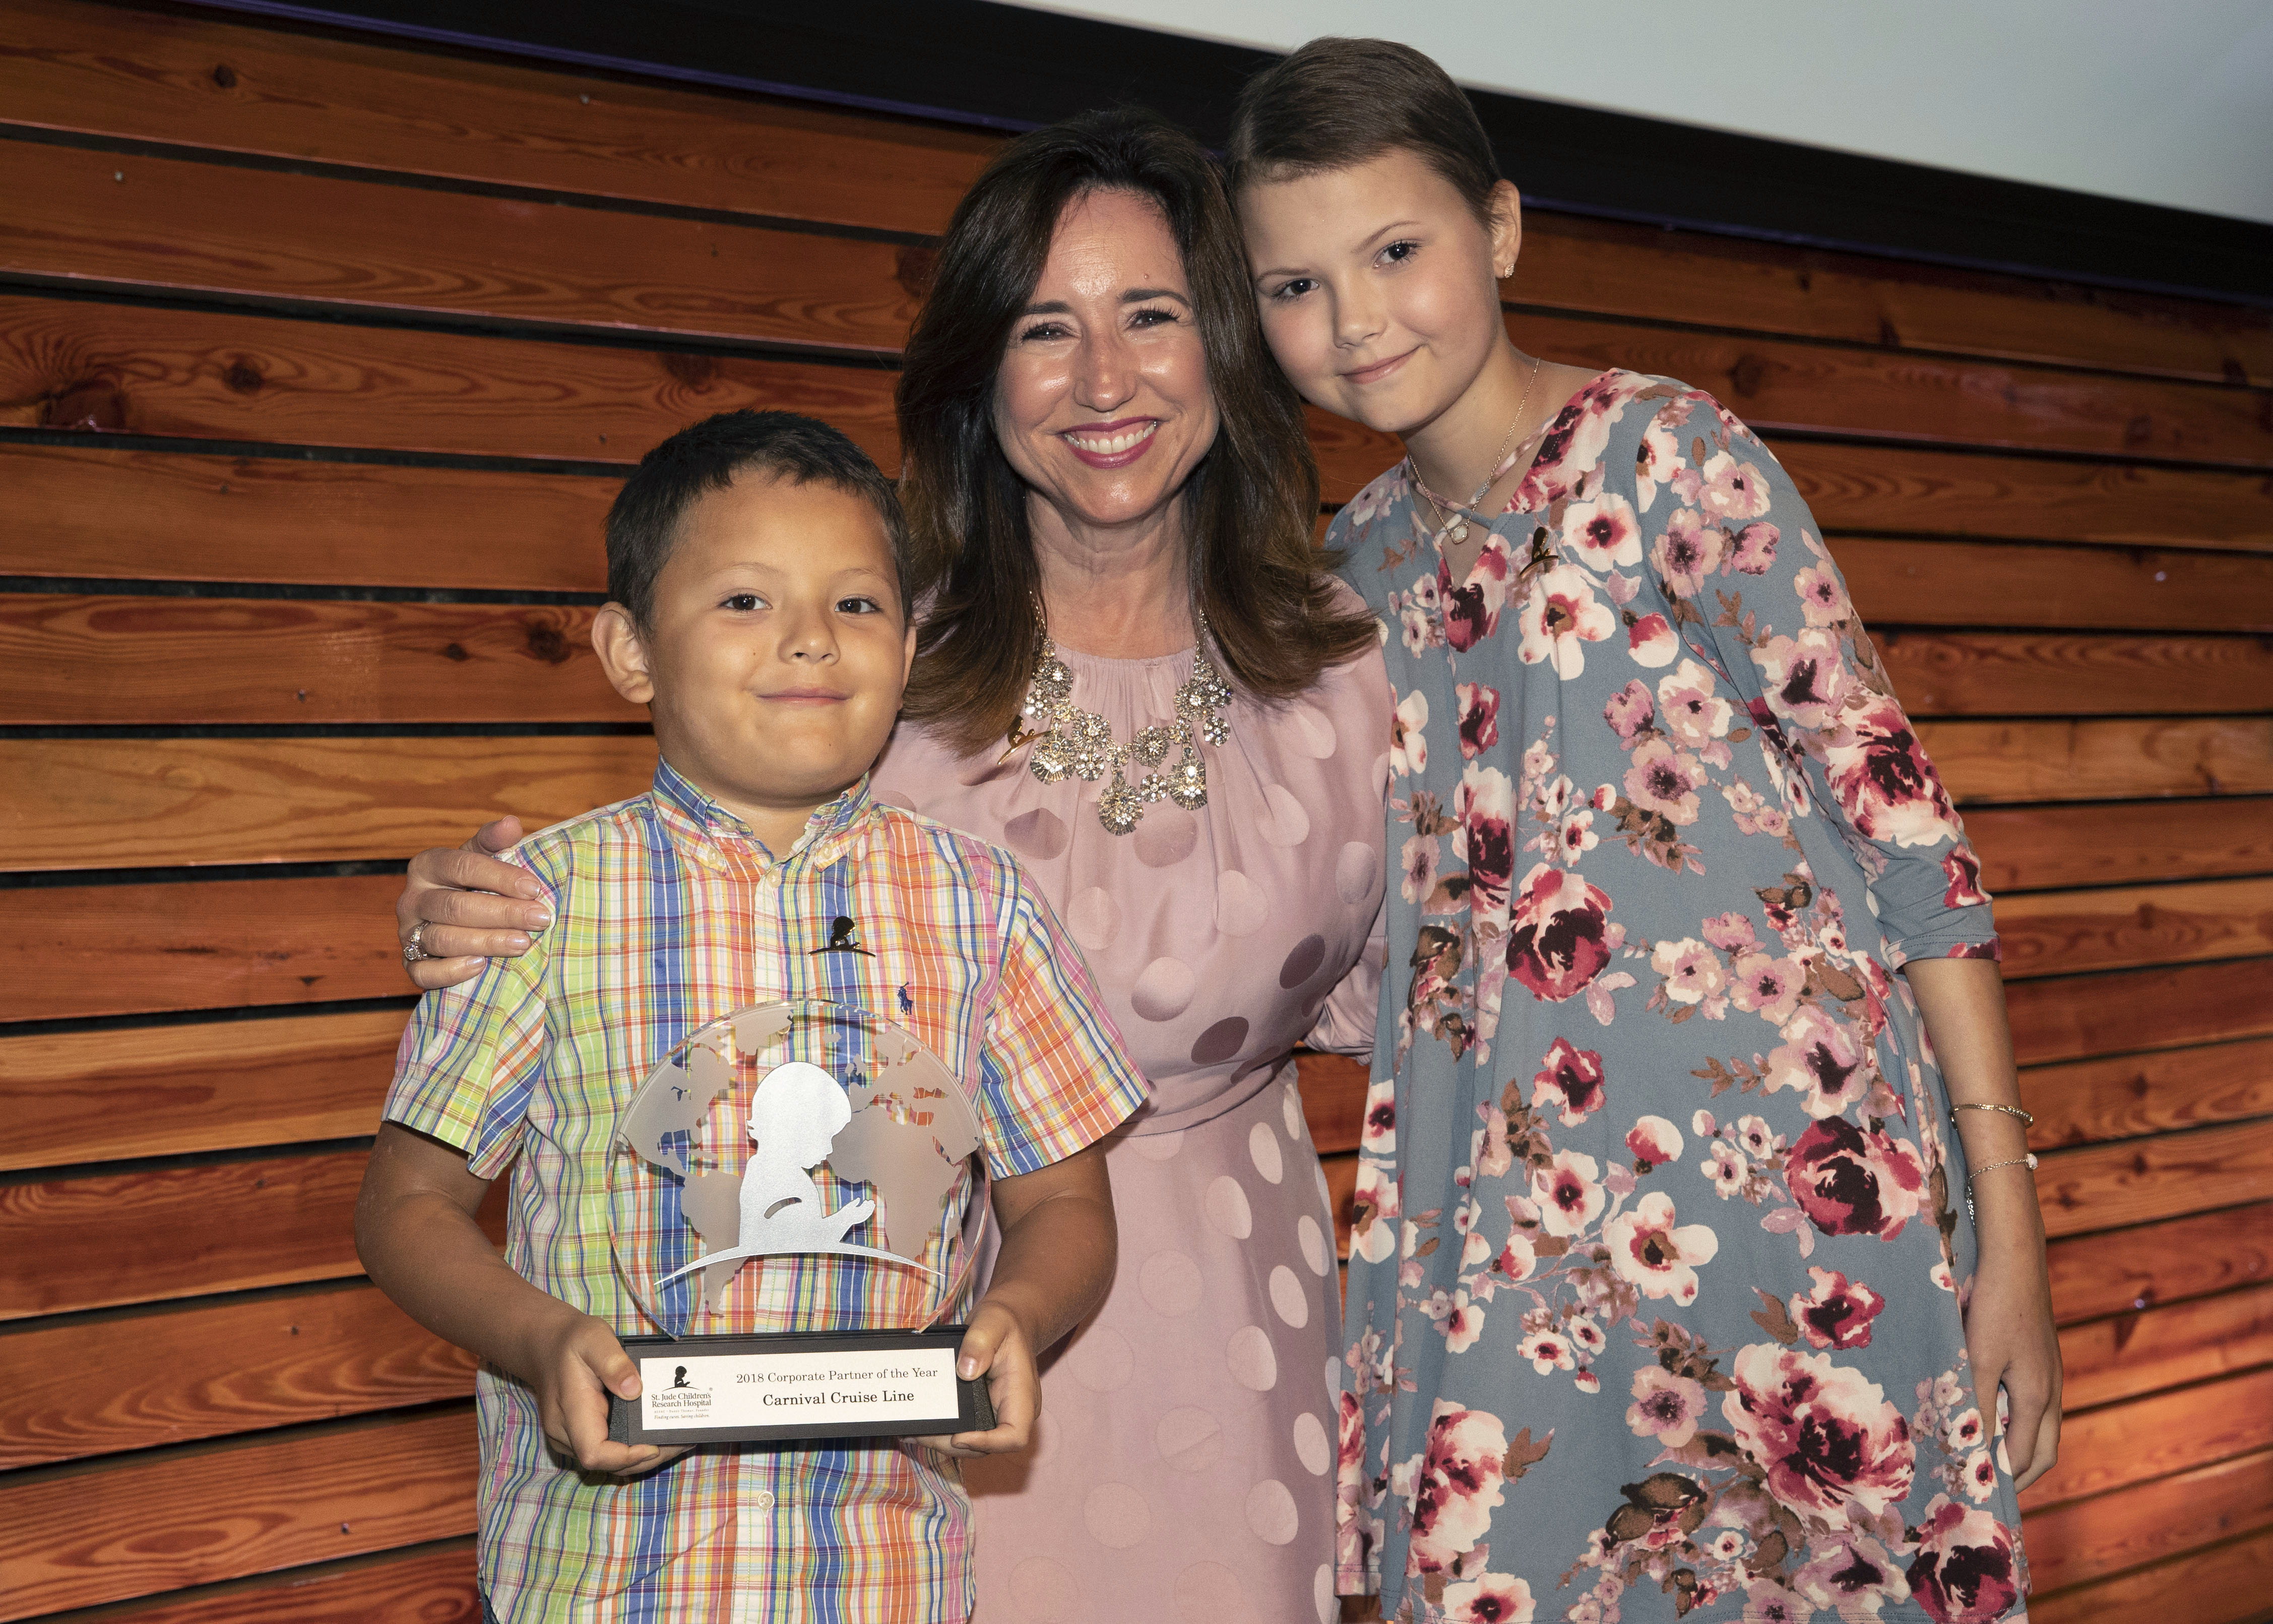 Carnival Cruise Line Named St. Jude Children's Research Hospital's 'Corporate Partner of the Year'